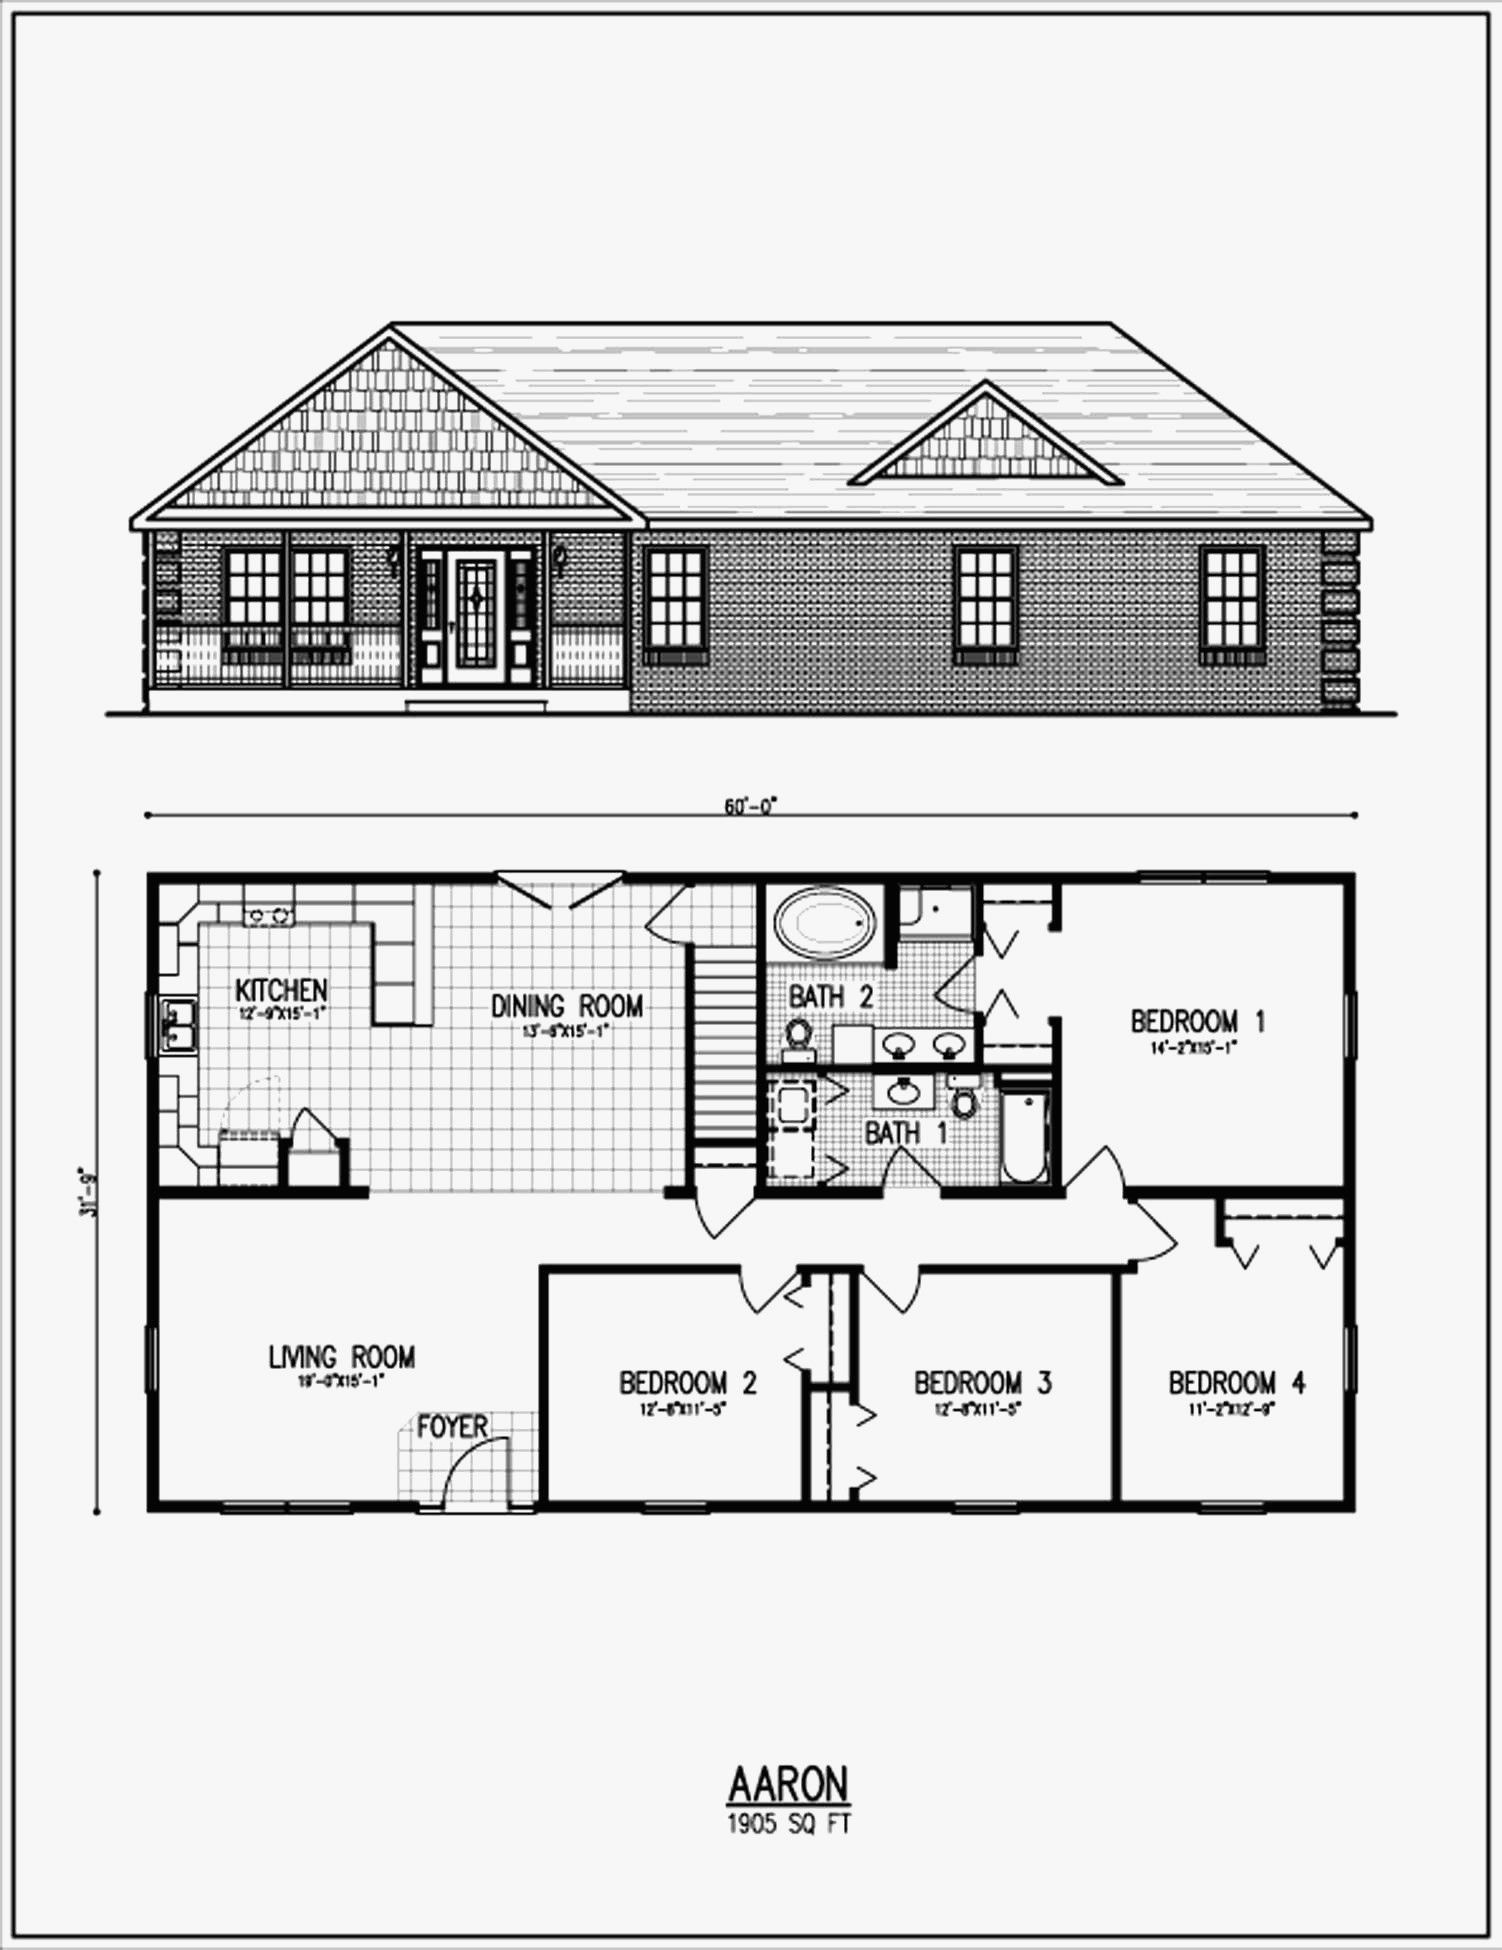 eee35a339f7a1ea0a0241965ac984521 Ranch By House Plans on modern house plans, rustic craftsman house plans, 20 by 40 house plans, earth house plans, 30x60 house plans, 30 x 30 house plans, 2d house plans, architecture design house plans, 60s house plans, east facing duplex house plans, 40 by 40 house plans,